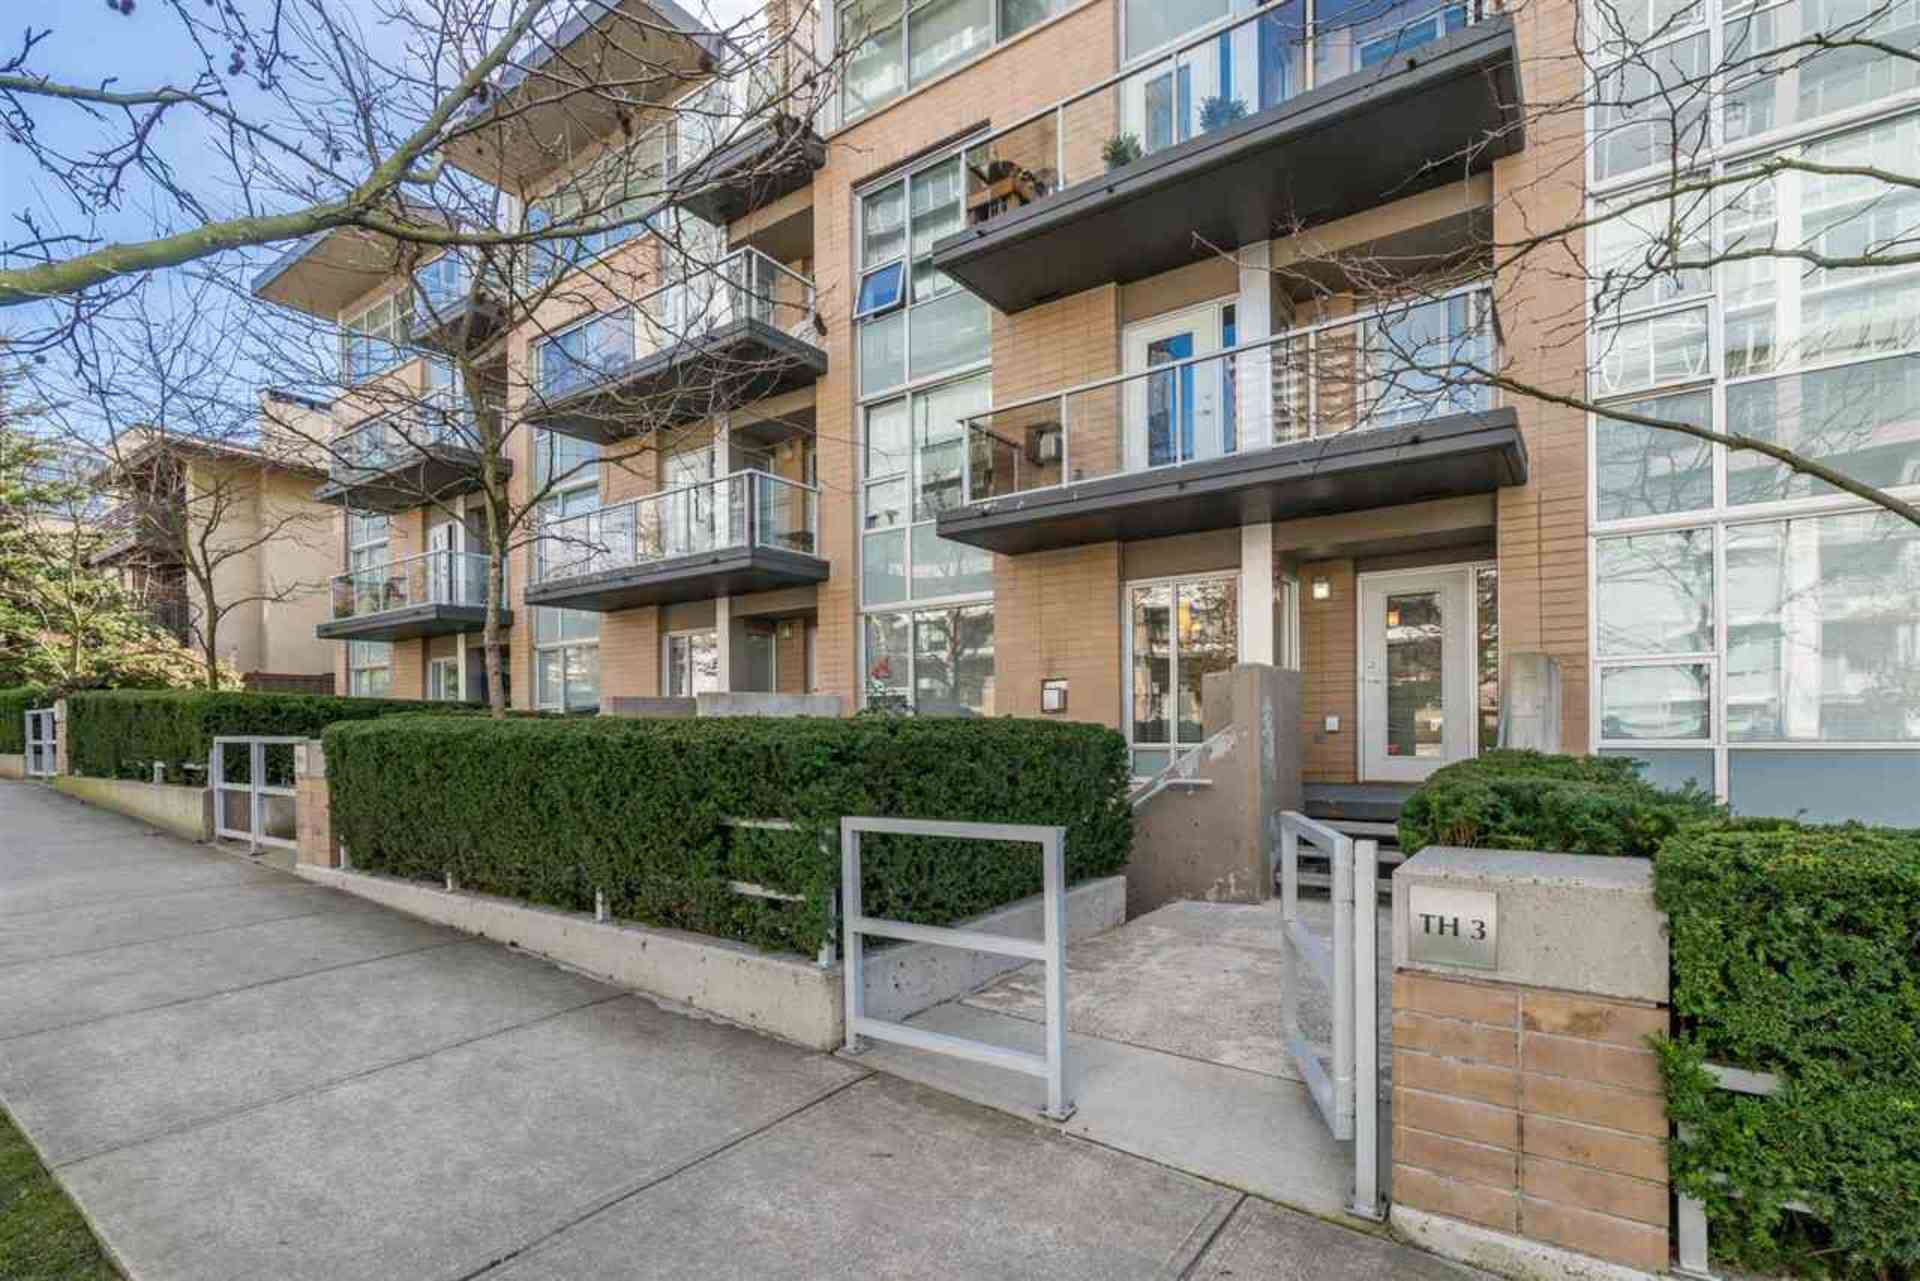 1288-chesterfield-avenue-central-lonsdale-north-vancouver-03-1 at TH3 - 1288 Chesterfield Avenue, Central Lonsdale, North Vancouver